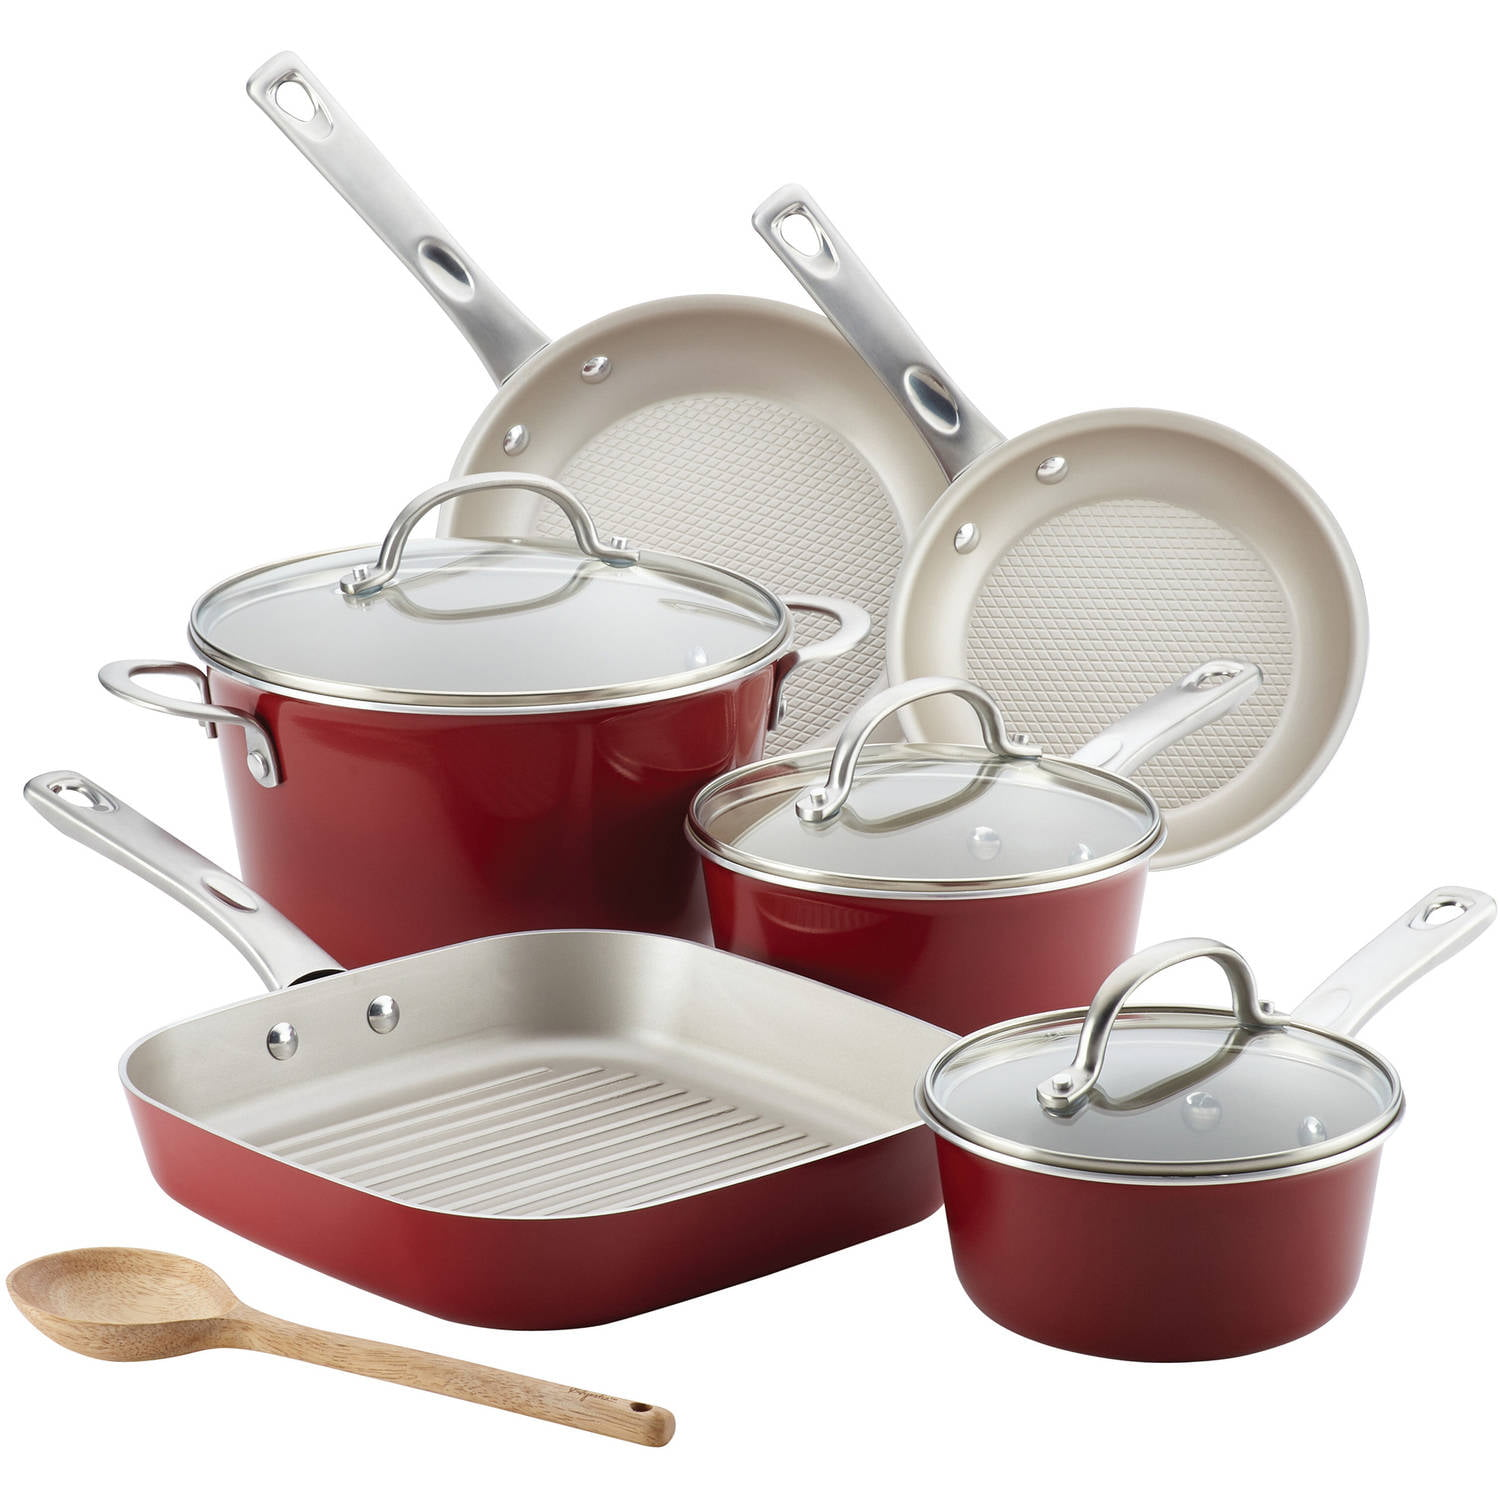 Ayesha Curry Porcelain Enamel Nonstick 10-Pc Cookware Set, Sienna Red by Meyer Corporation